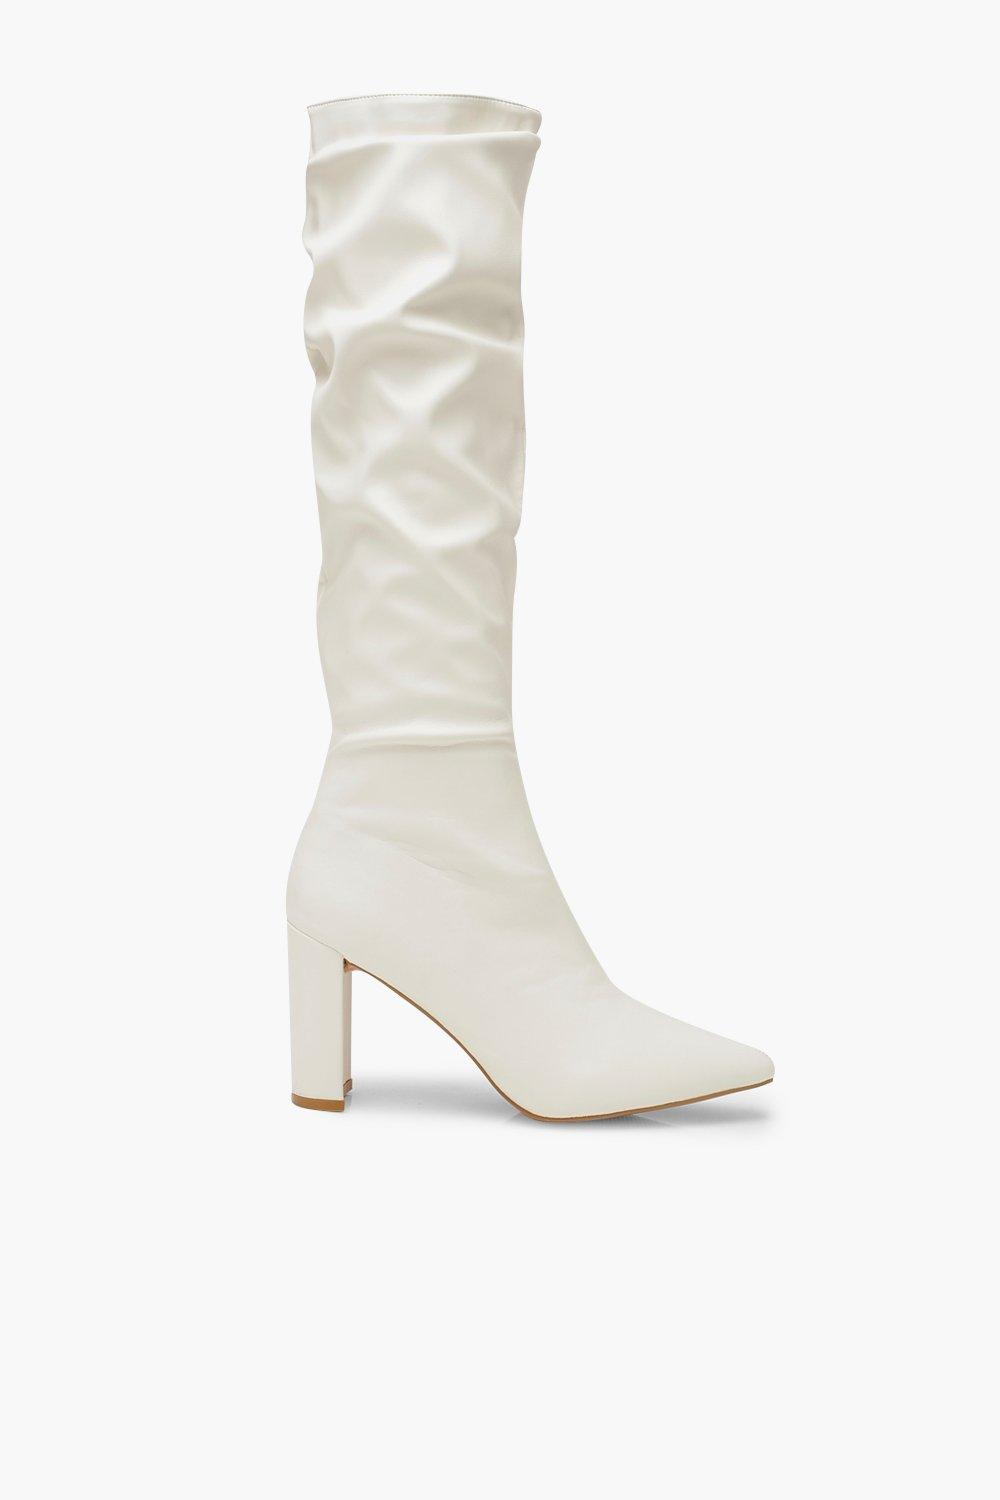 Vintage Boots- Buy Winter Retro Boots Womens Block Heel Rouched Knee Boots - white - 10 $30.00 AT vintagedancer.com